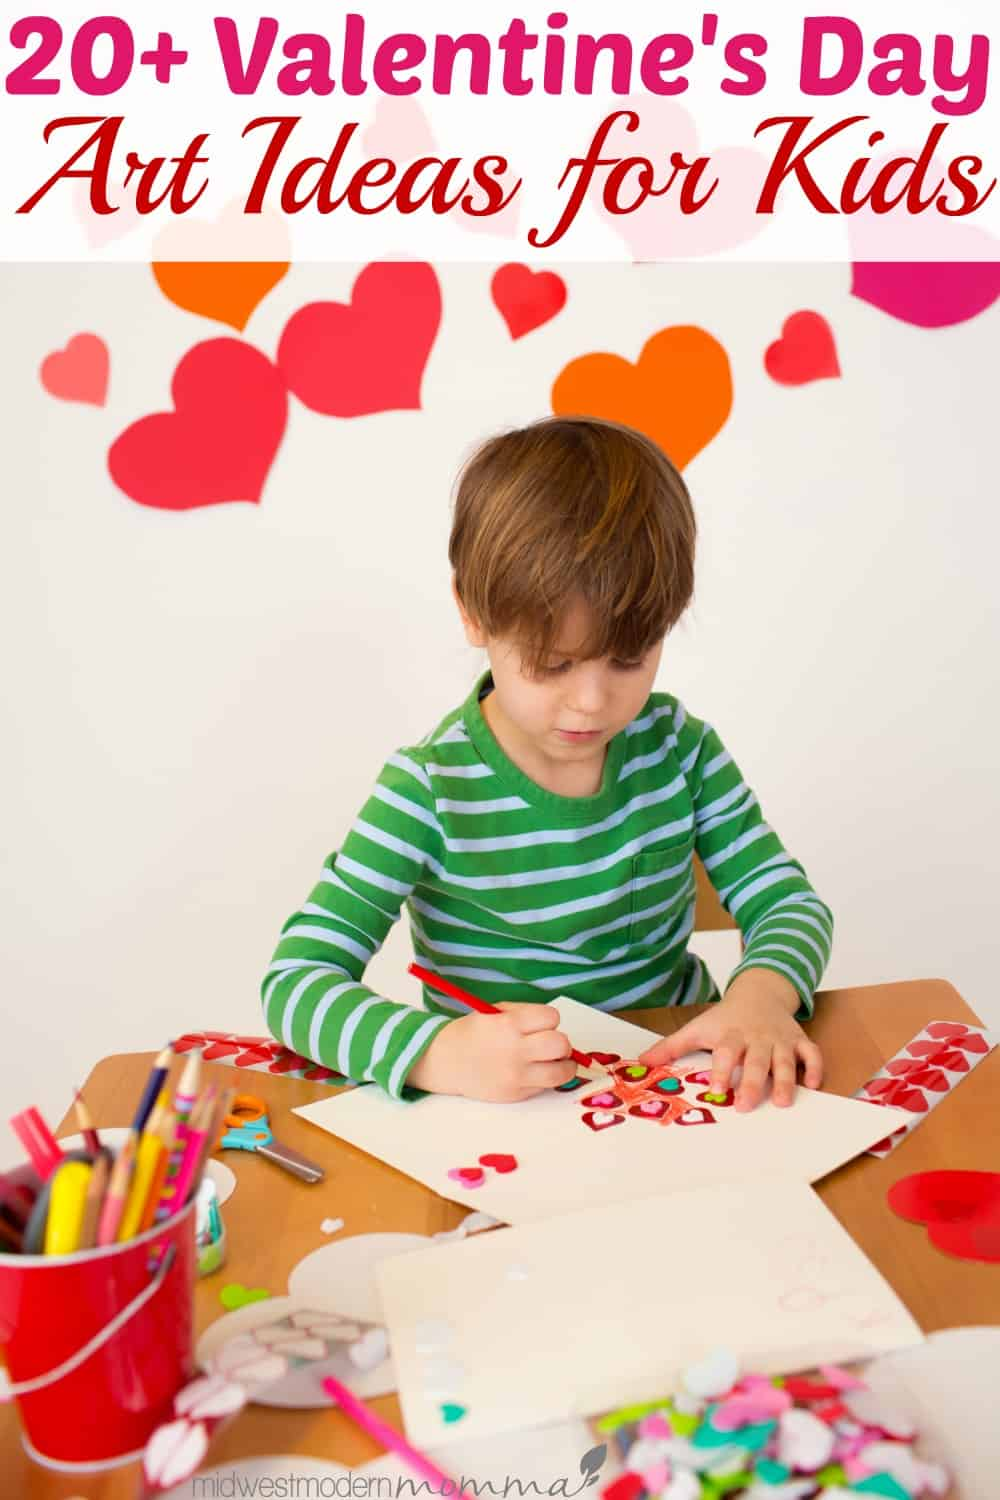 These Valentine's Day Art Ideas for Kids are sure to keep your children entertained on those cold days and get their creative juices flowing!